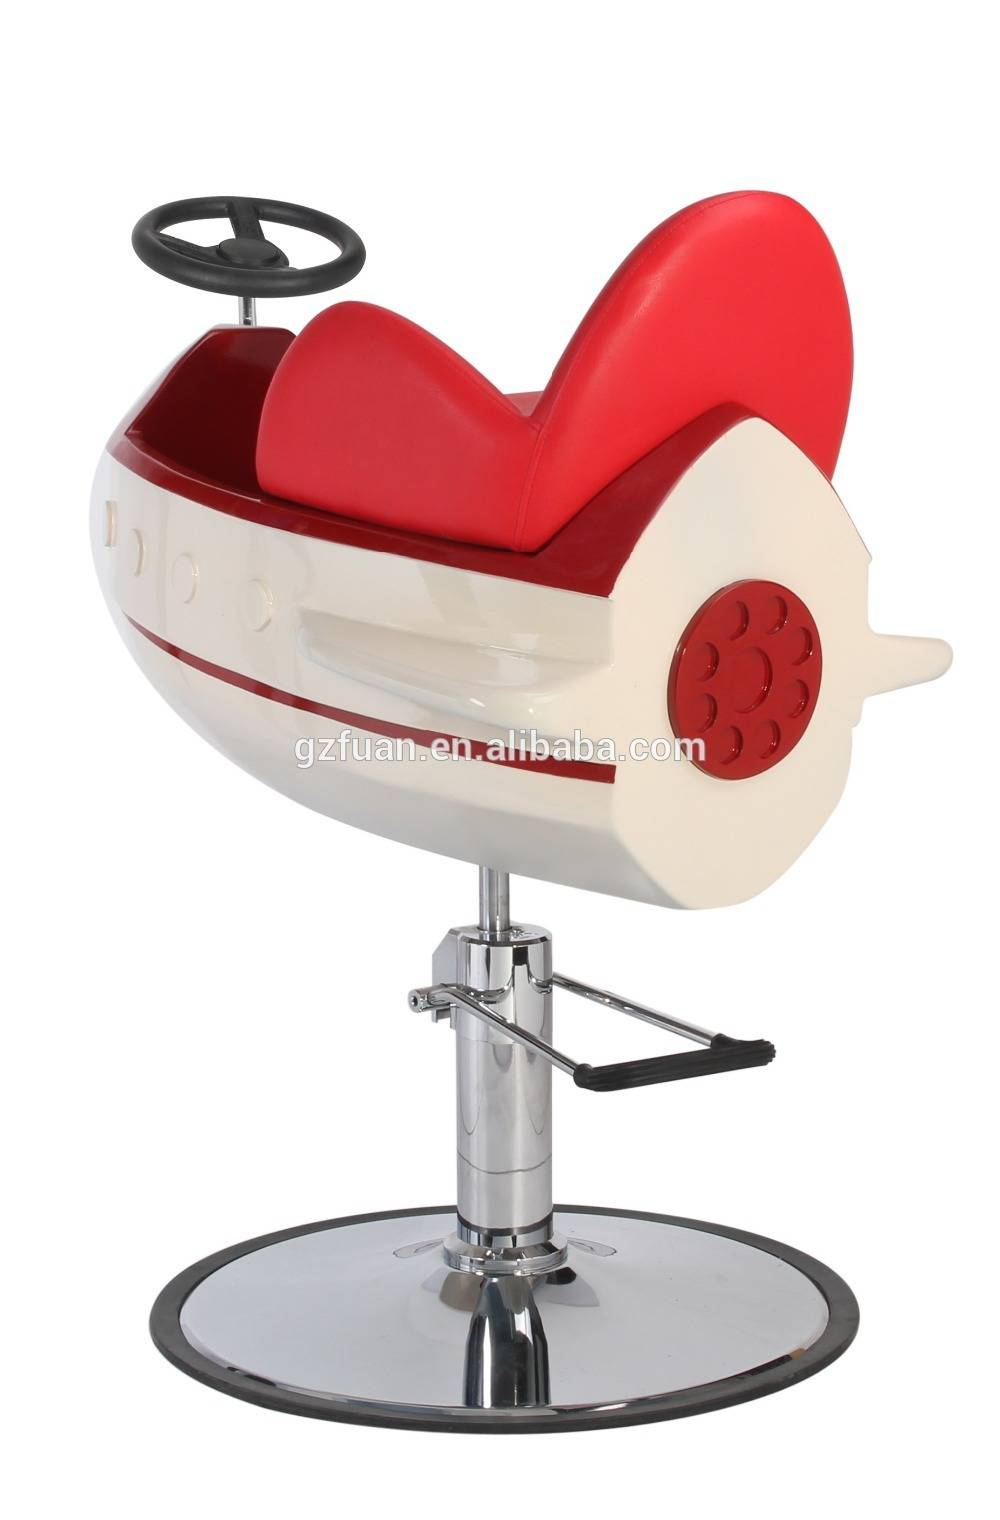 fashionable airplane model children styling Chair CH-9117